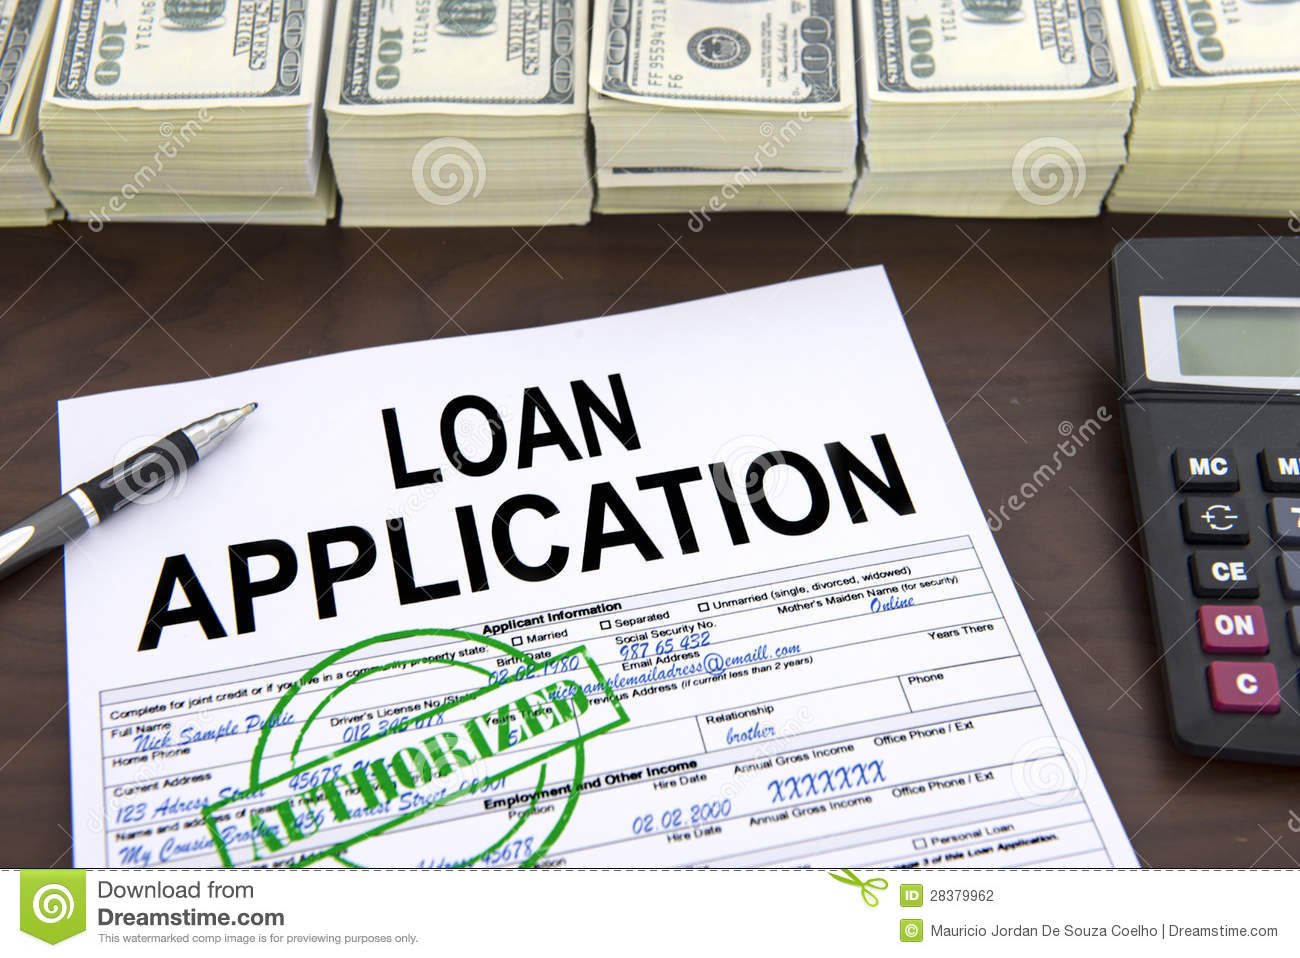 Capital One Auto Loan Payment >> Approved Loan Application Form And Dollar Bills Stock ...